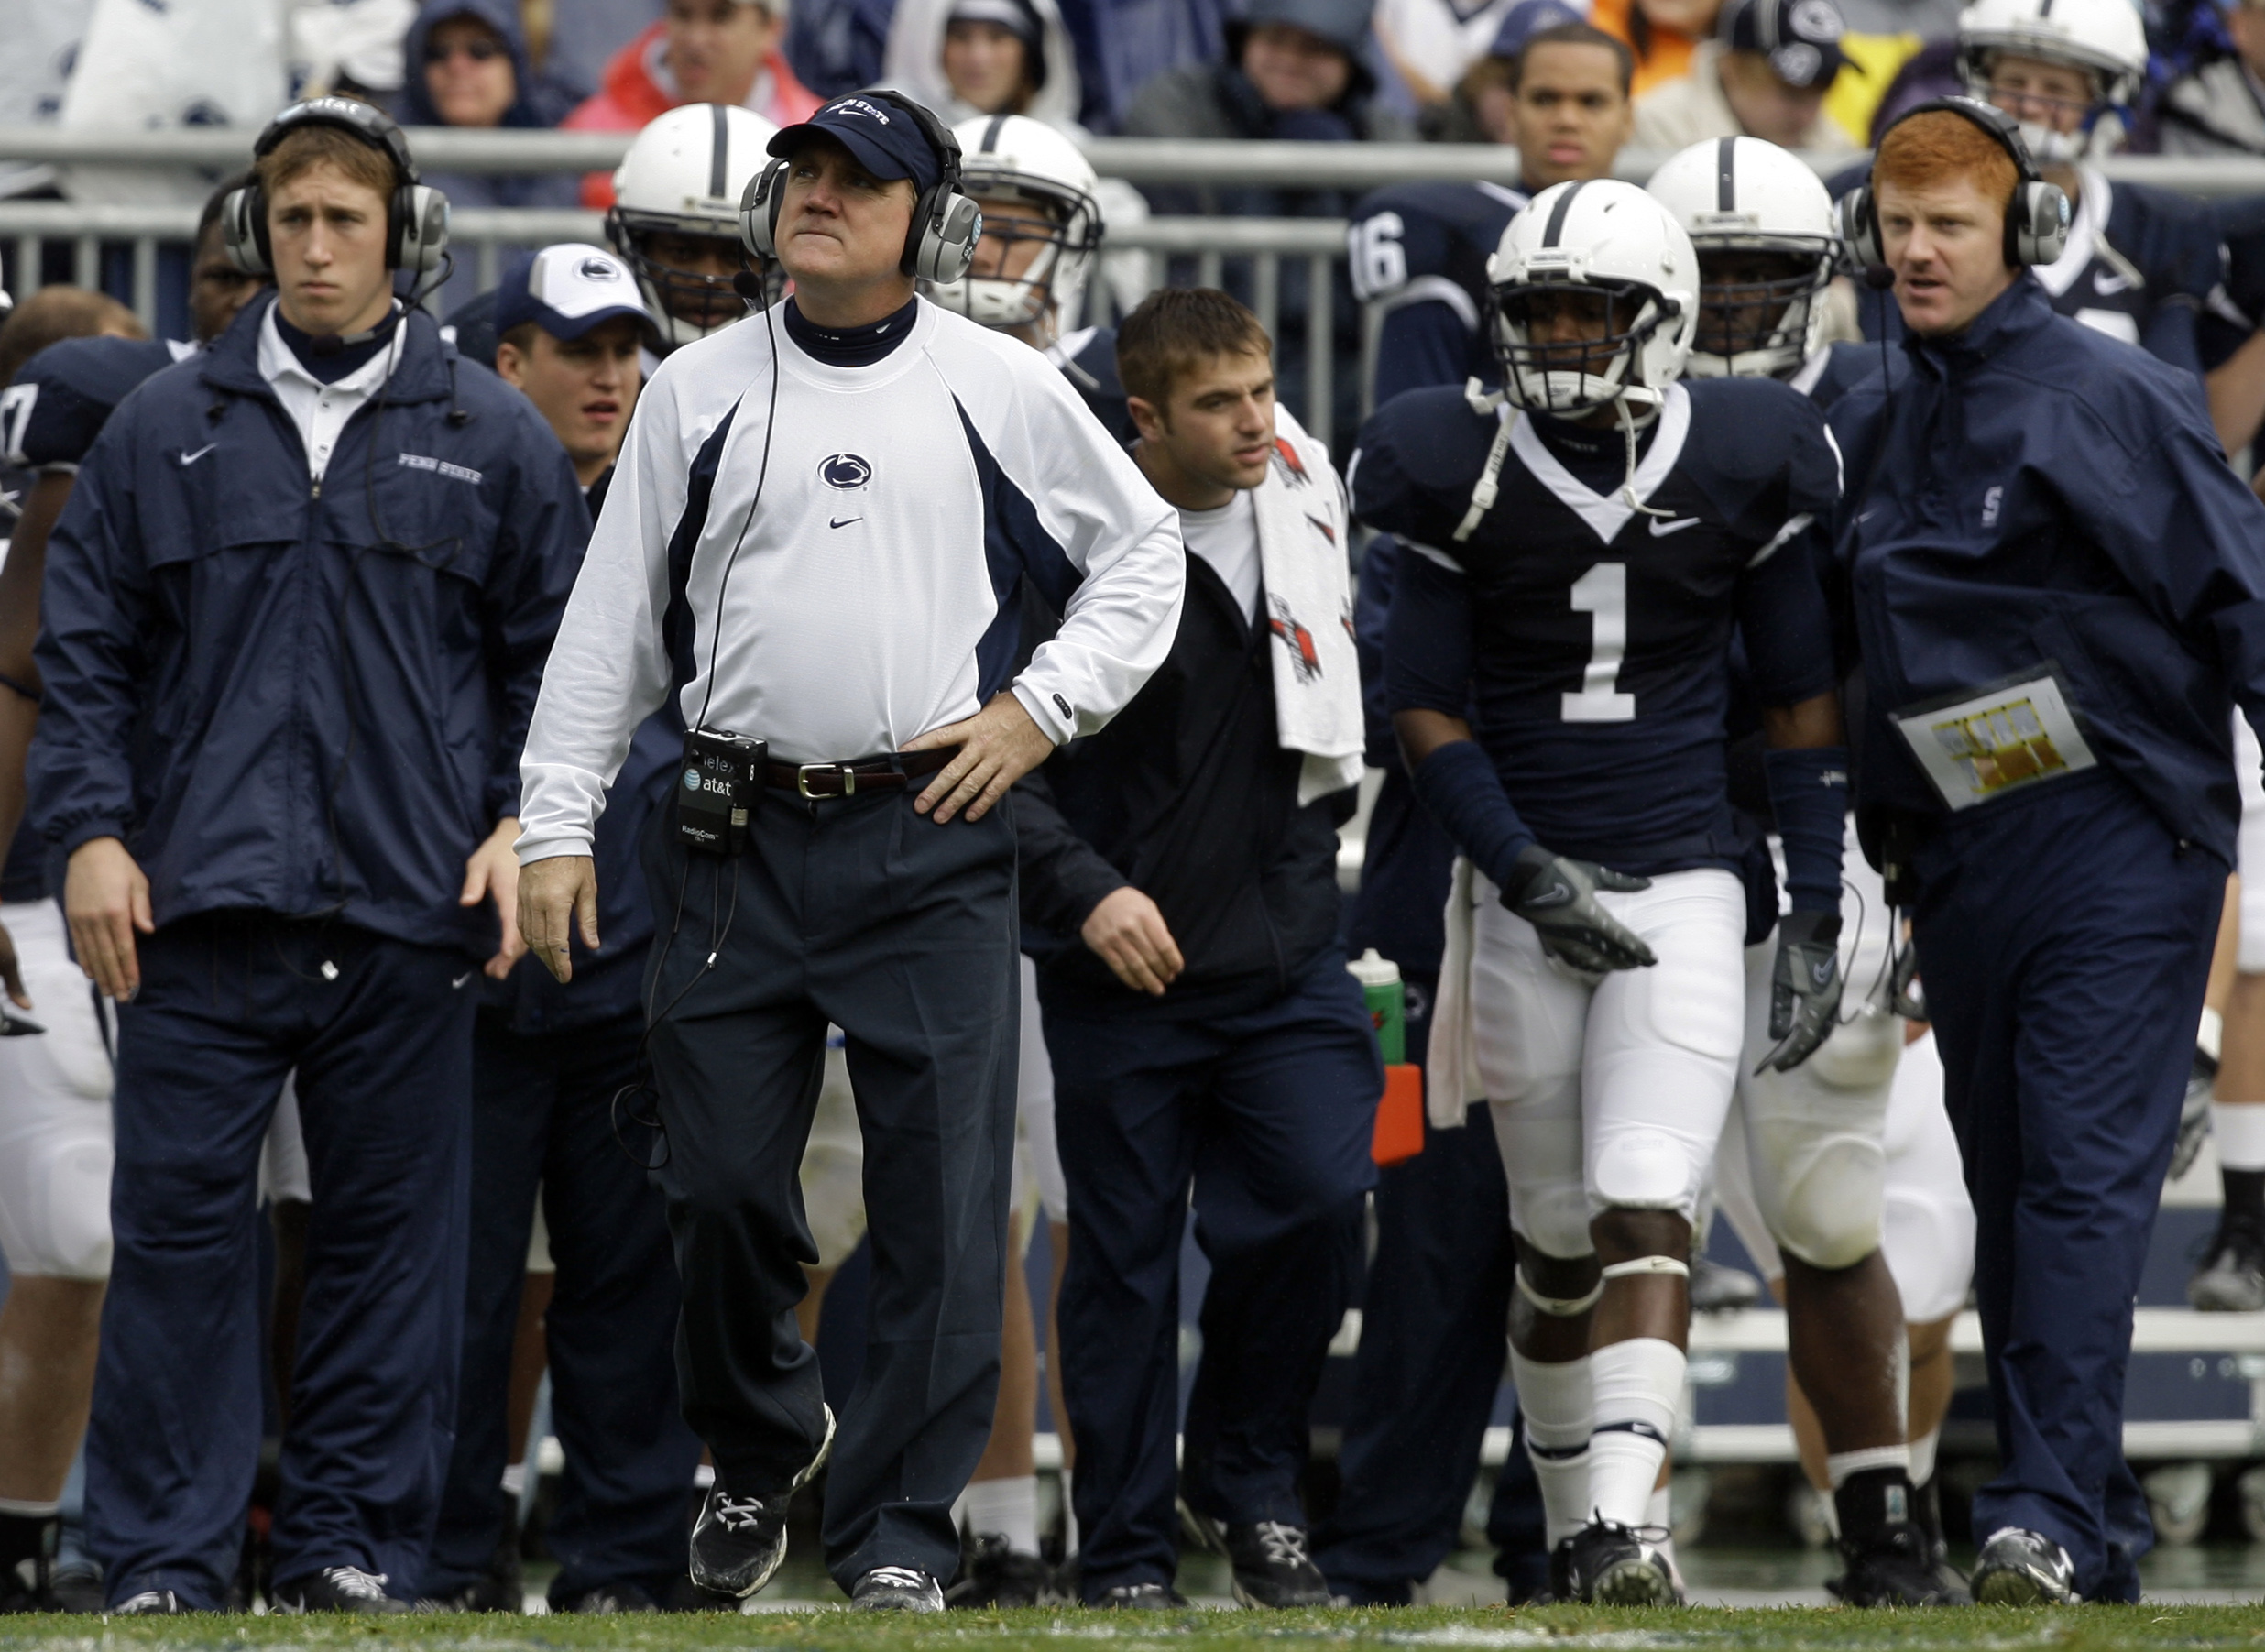 Penn State assistant coach Tom Bradley looks out from the sideline during the first half of their NCAA college football game against Indiana at Beaver Stadium in State College, Pa., Saturday, Nov. 15, 2008. To the far right is assistant coach Mike McQuear